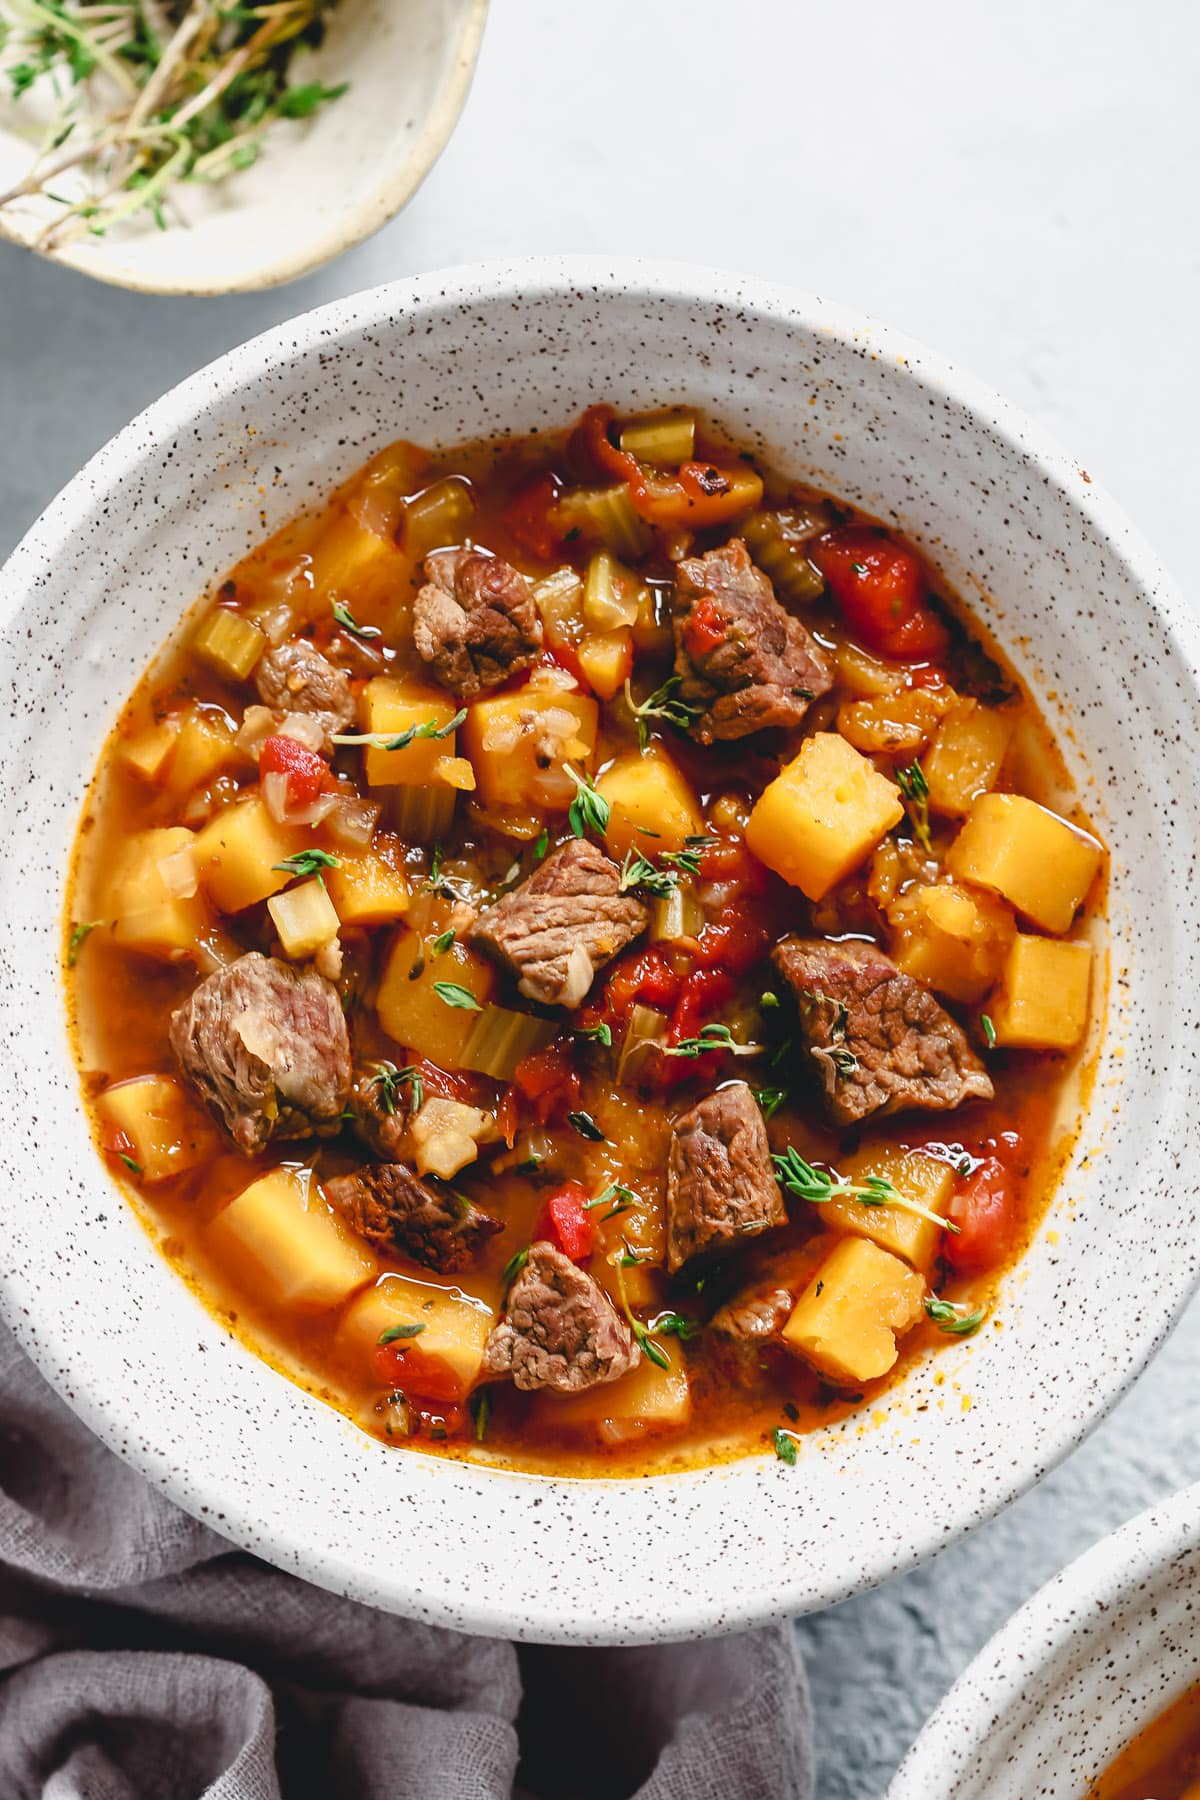 bowl of soup with beef, carrots, potatoes, and tomatoes